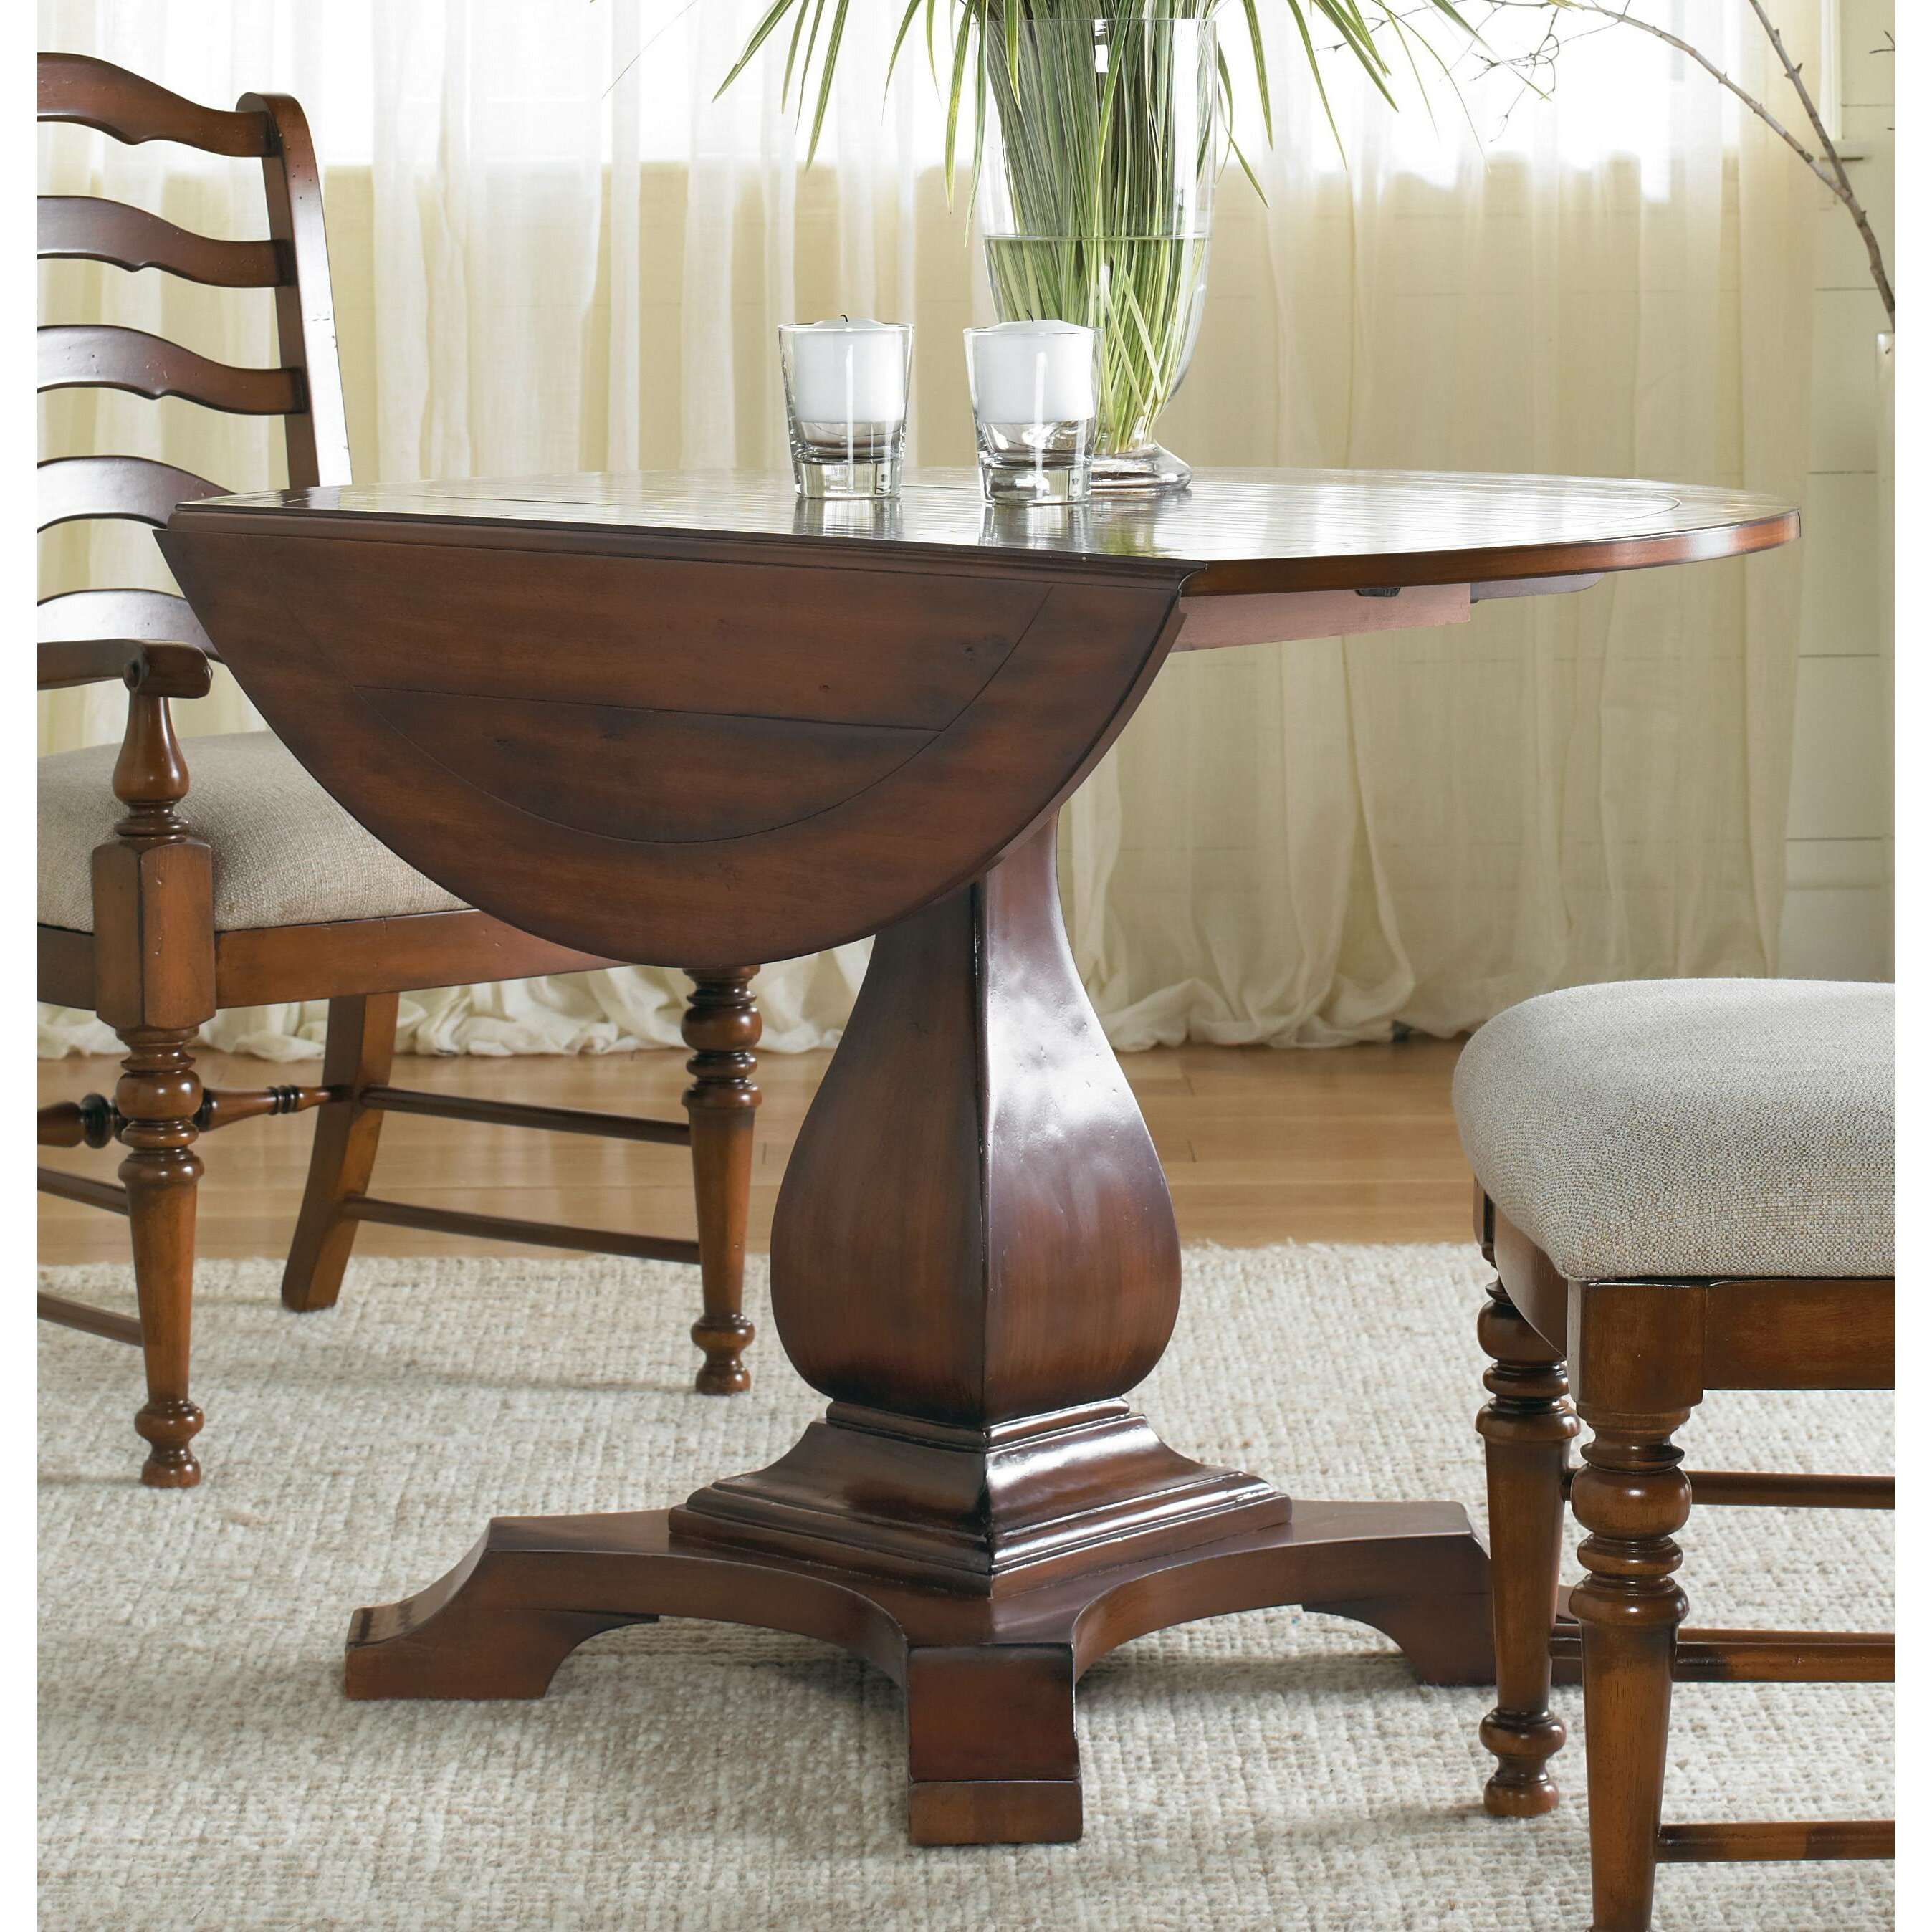 5pc Round Pedestal Drop Leaf Kitchen Table 4 Chairs: Round Drop Leaf Table